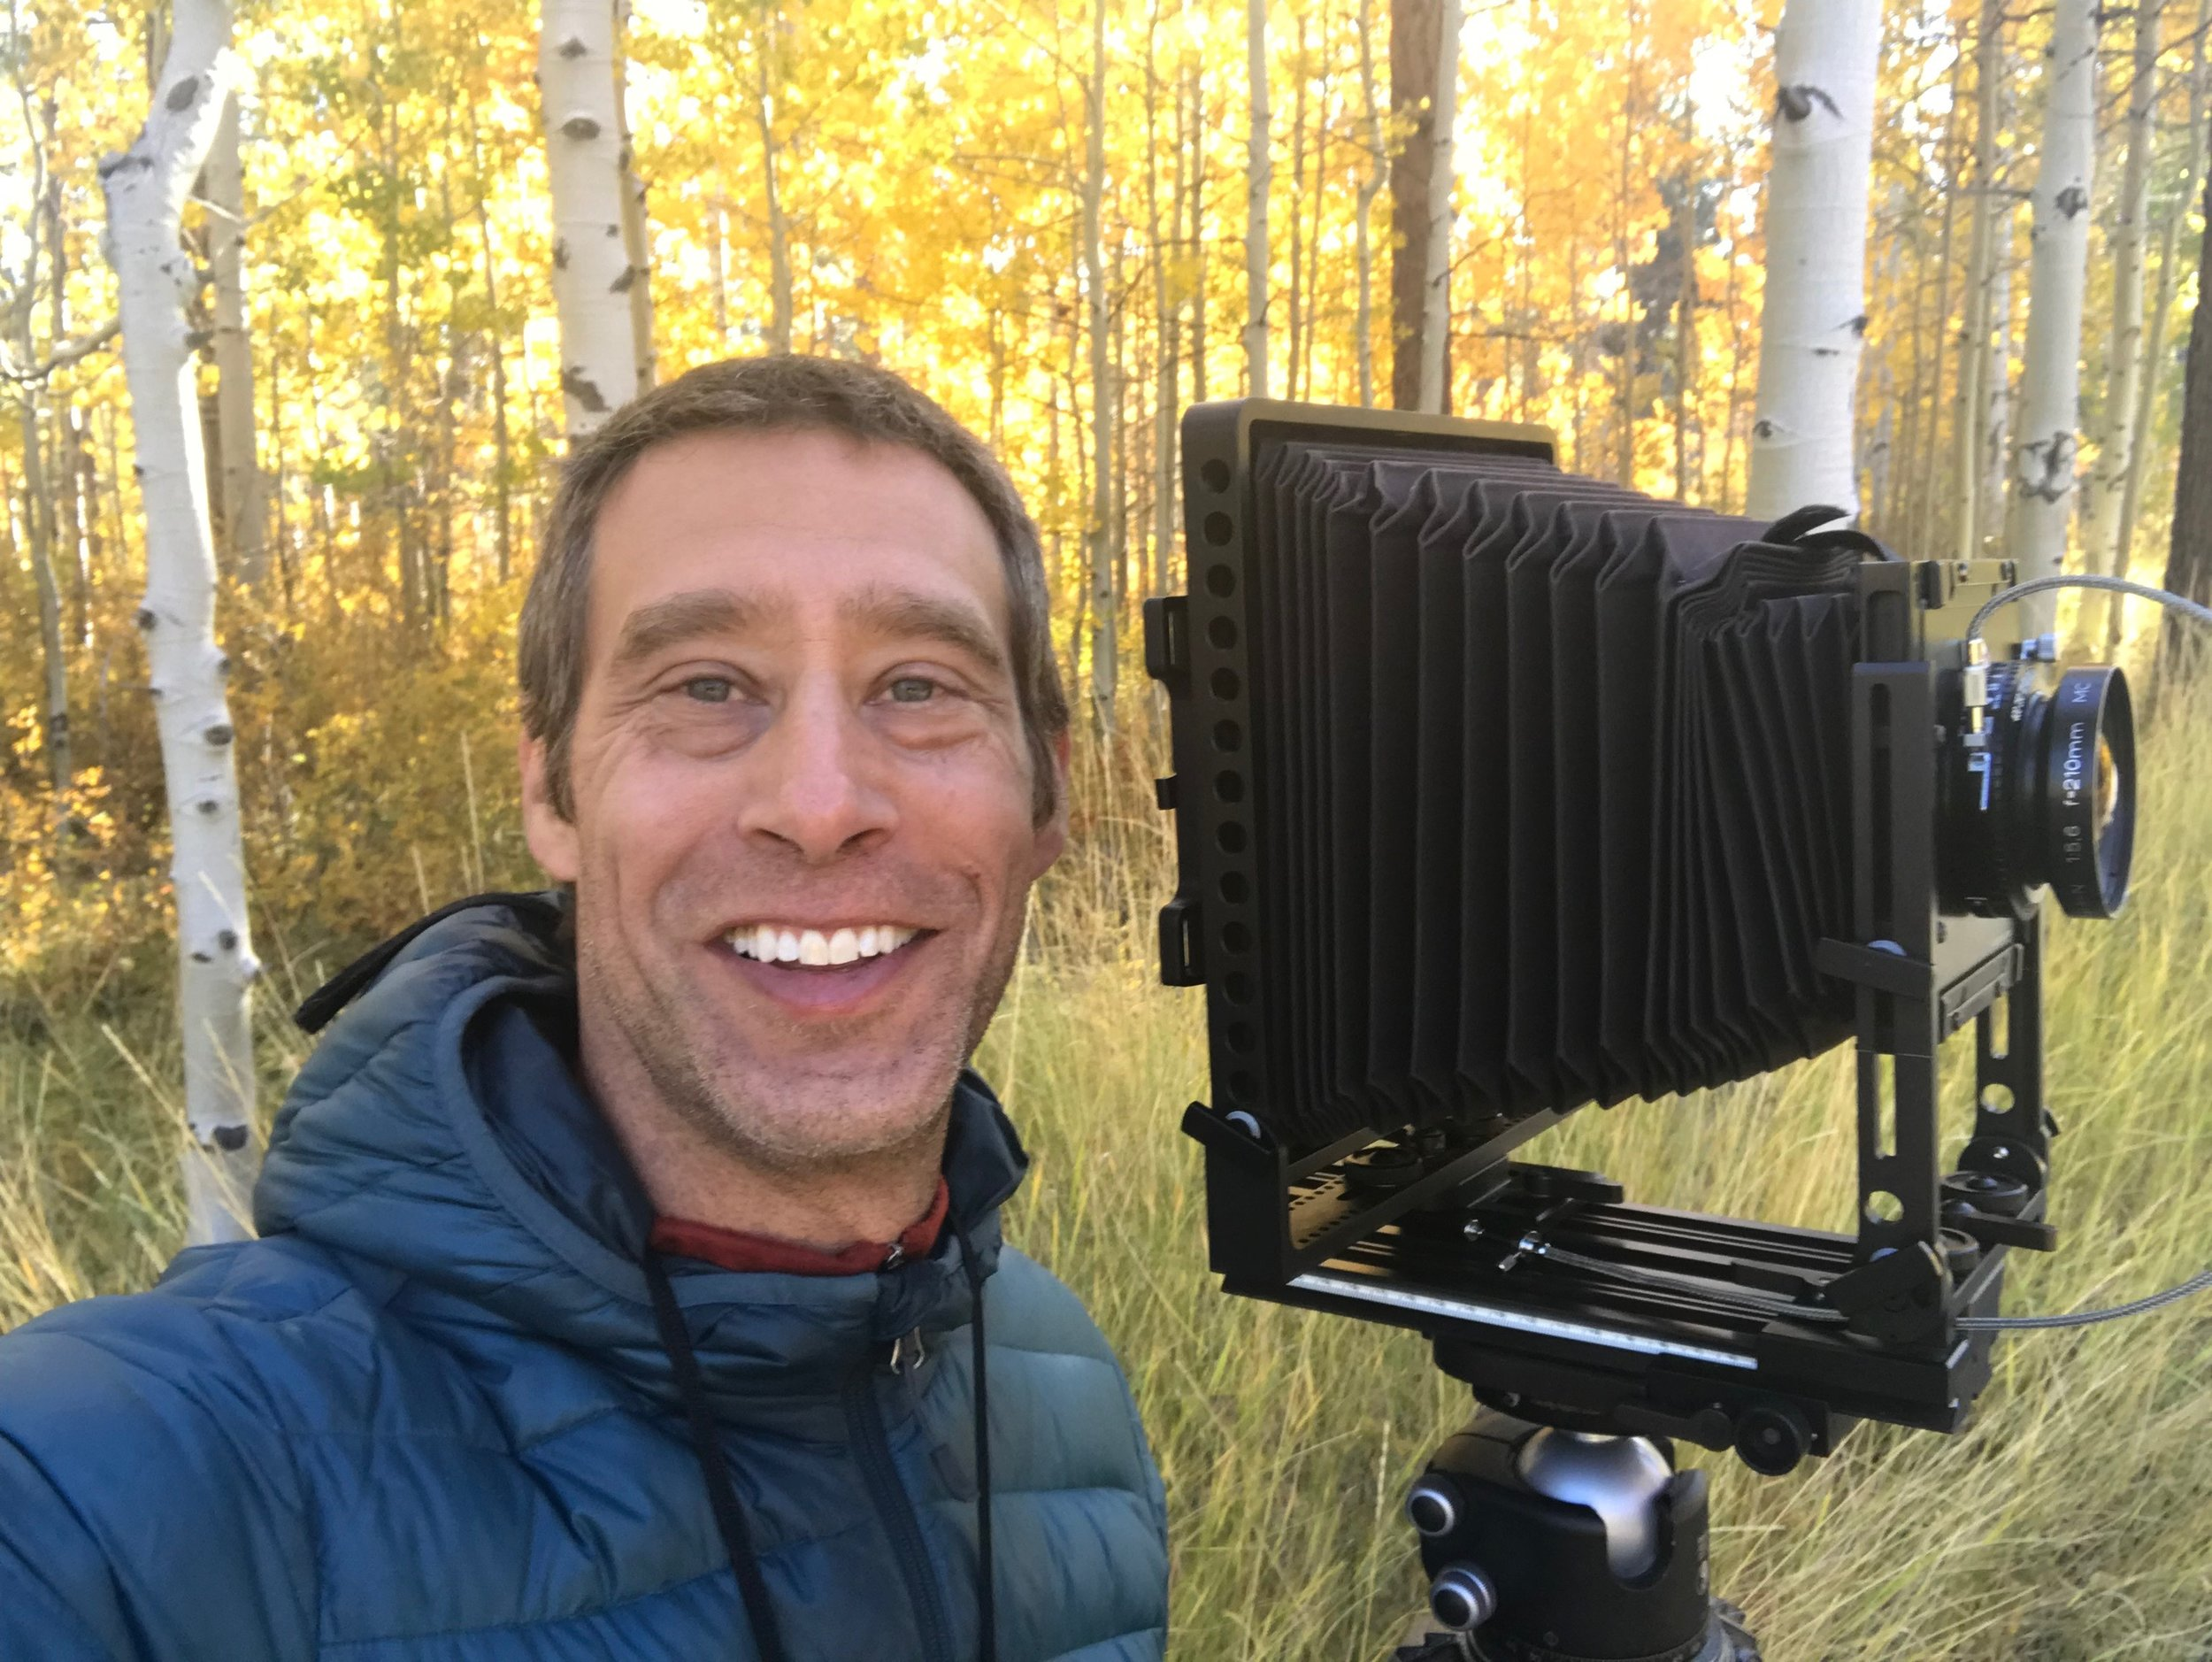 Jon Paul with his large format film camera